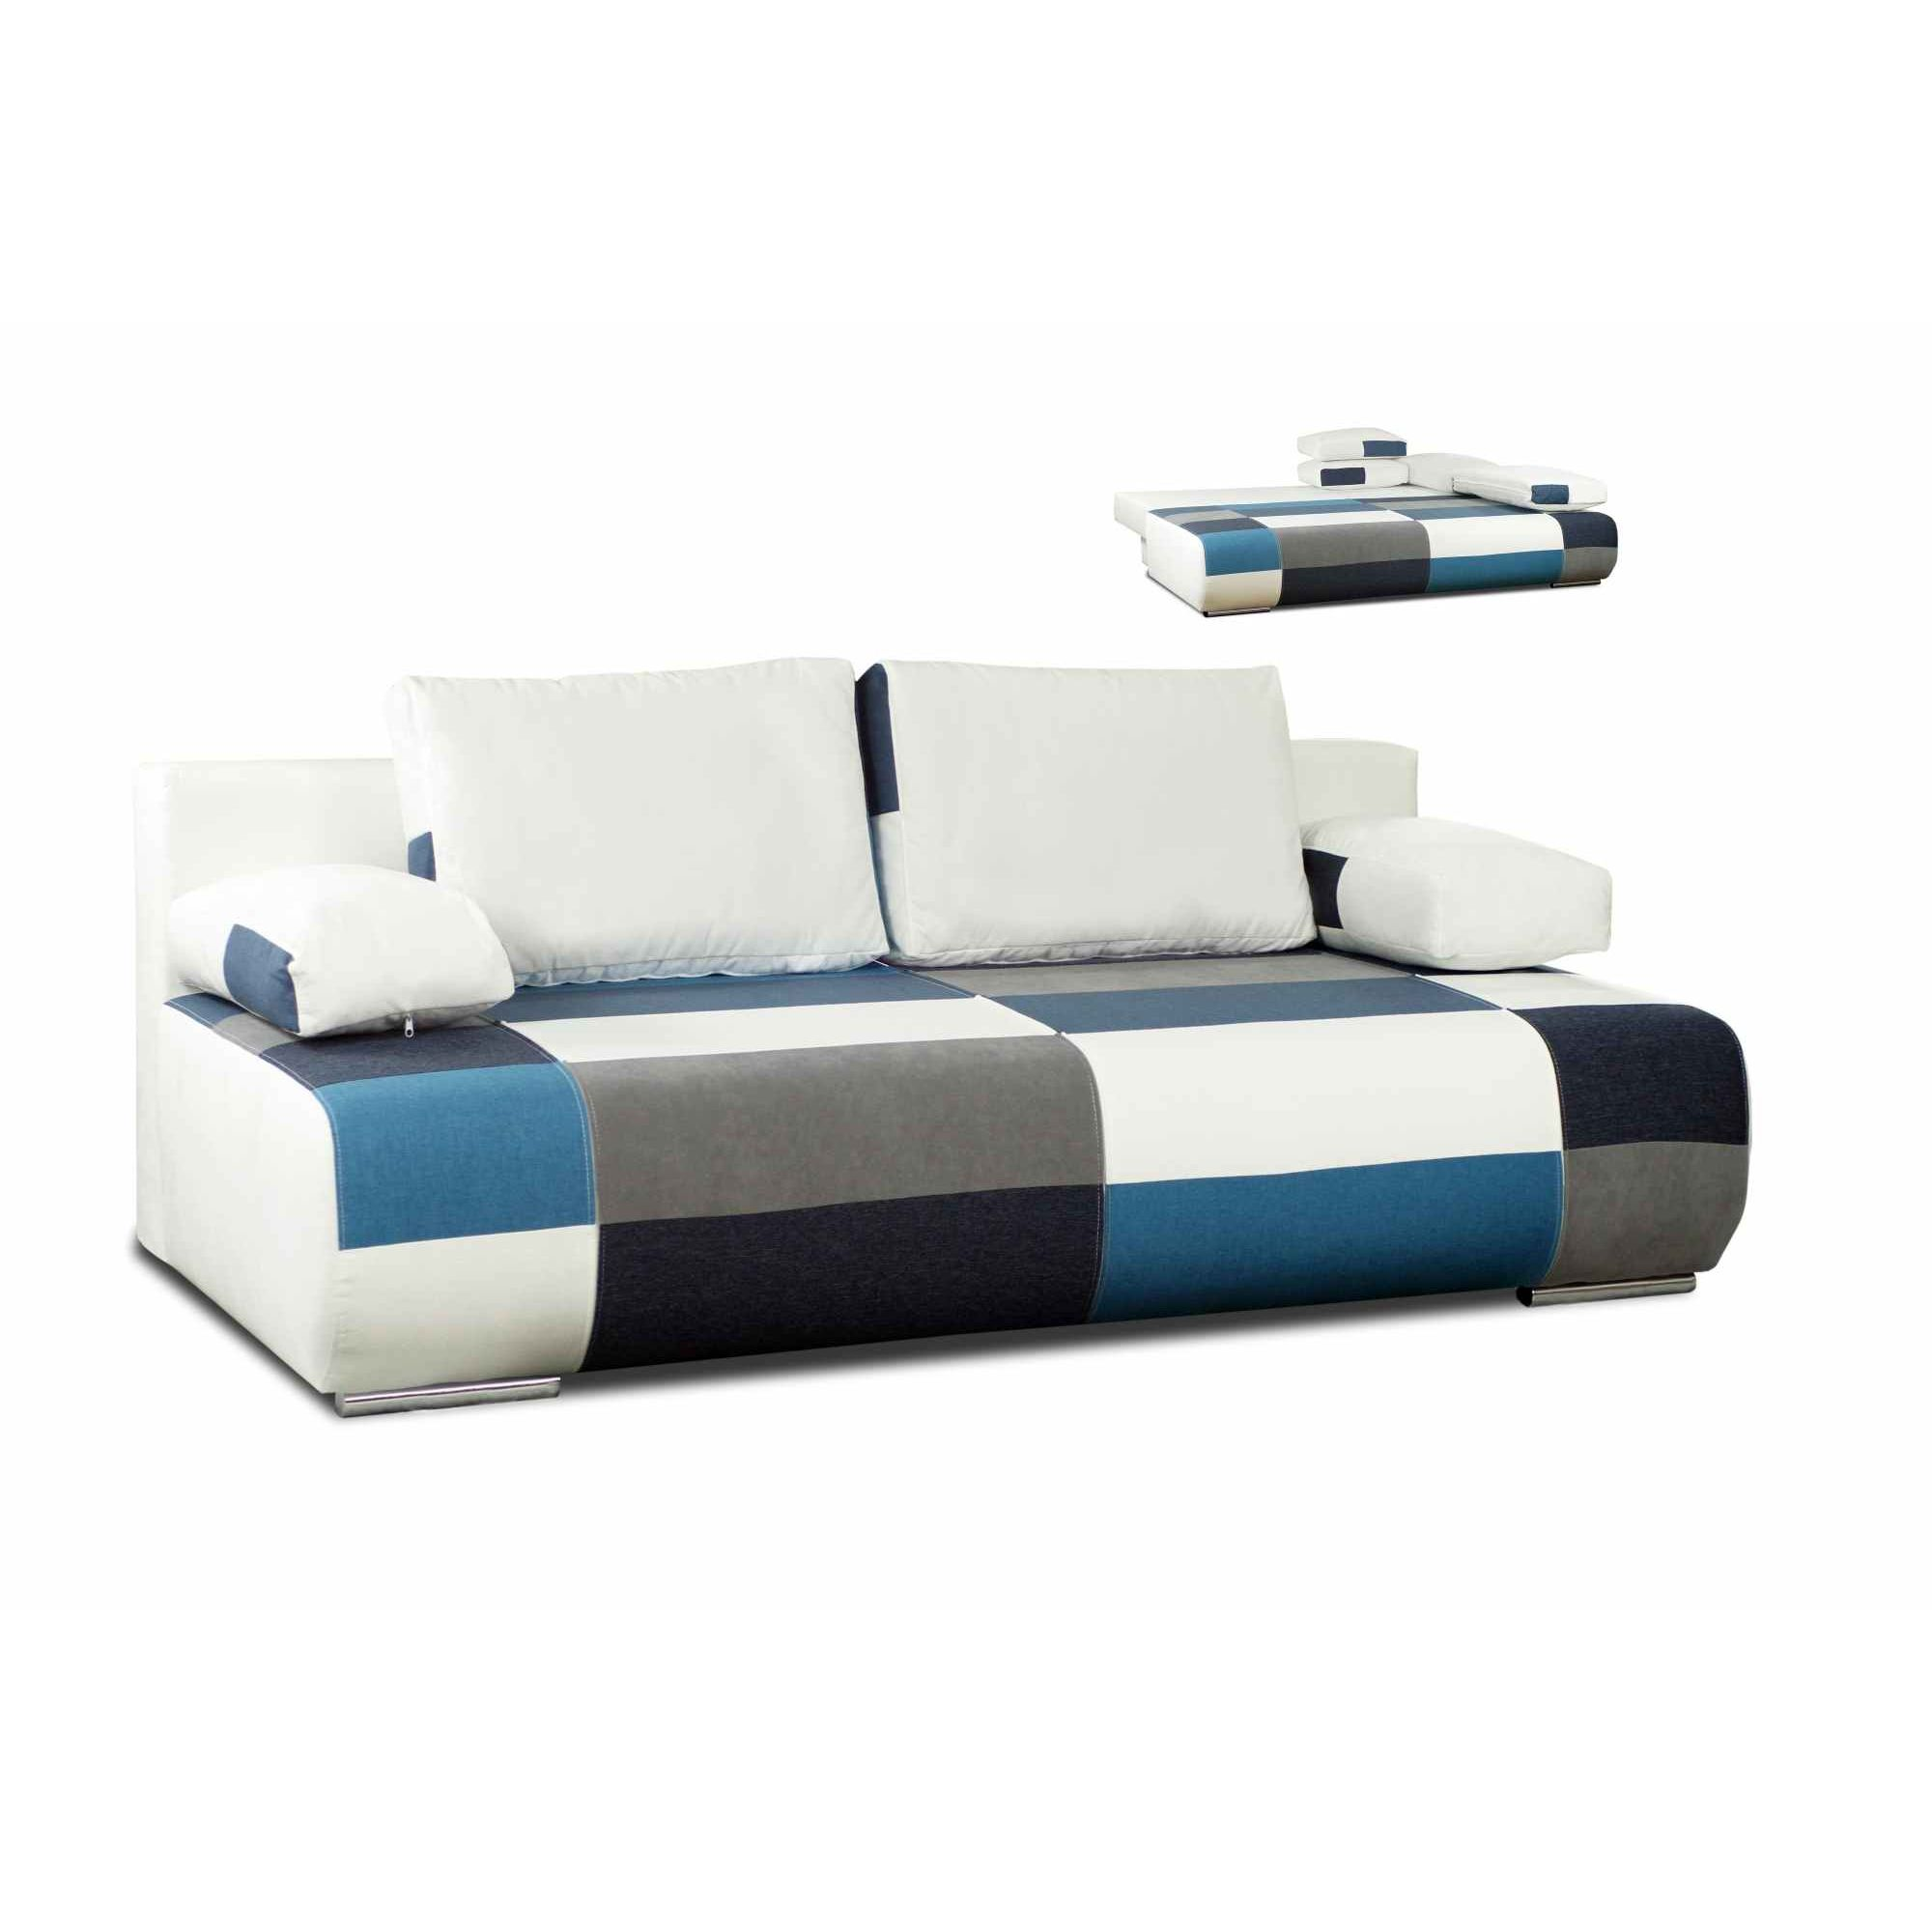 deco in paris canape 3 places convertible design en tissu bleu malte malte bleu. Black Bedroom Furniture Sets. Home Design Ideas